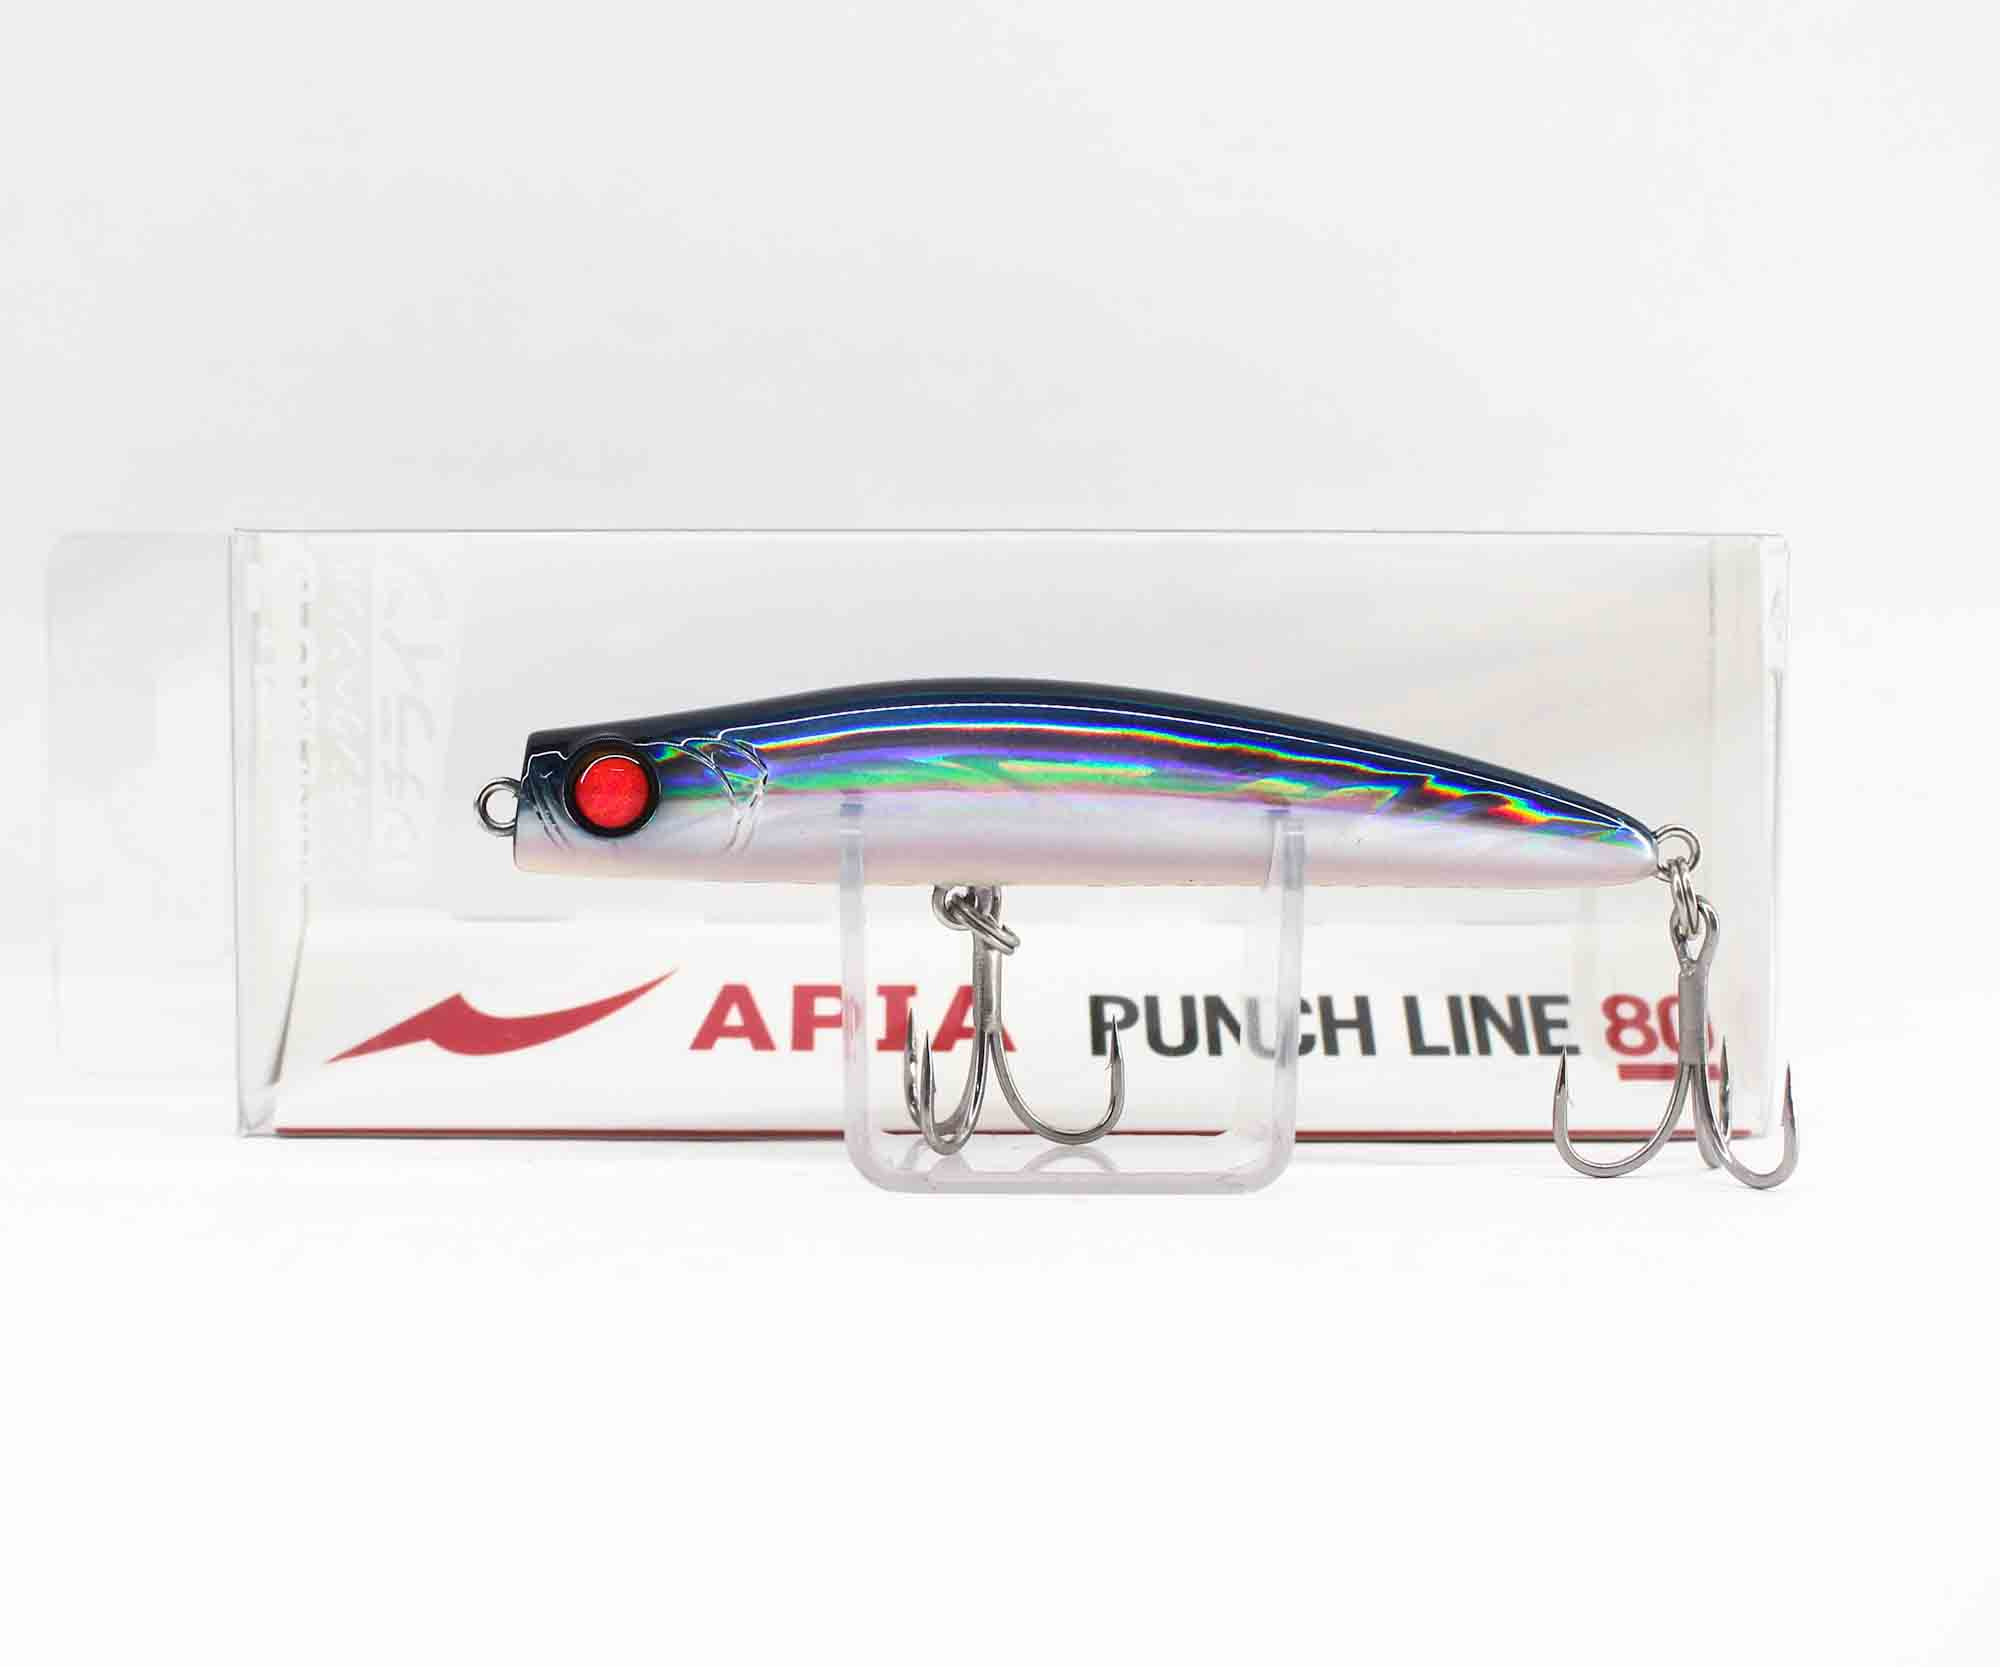 Apia Punch Line 80 Pencil Sinking Lure 21 (6487)